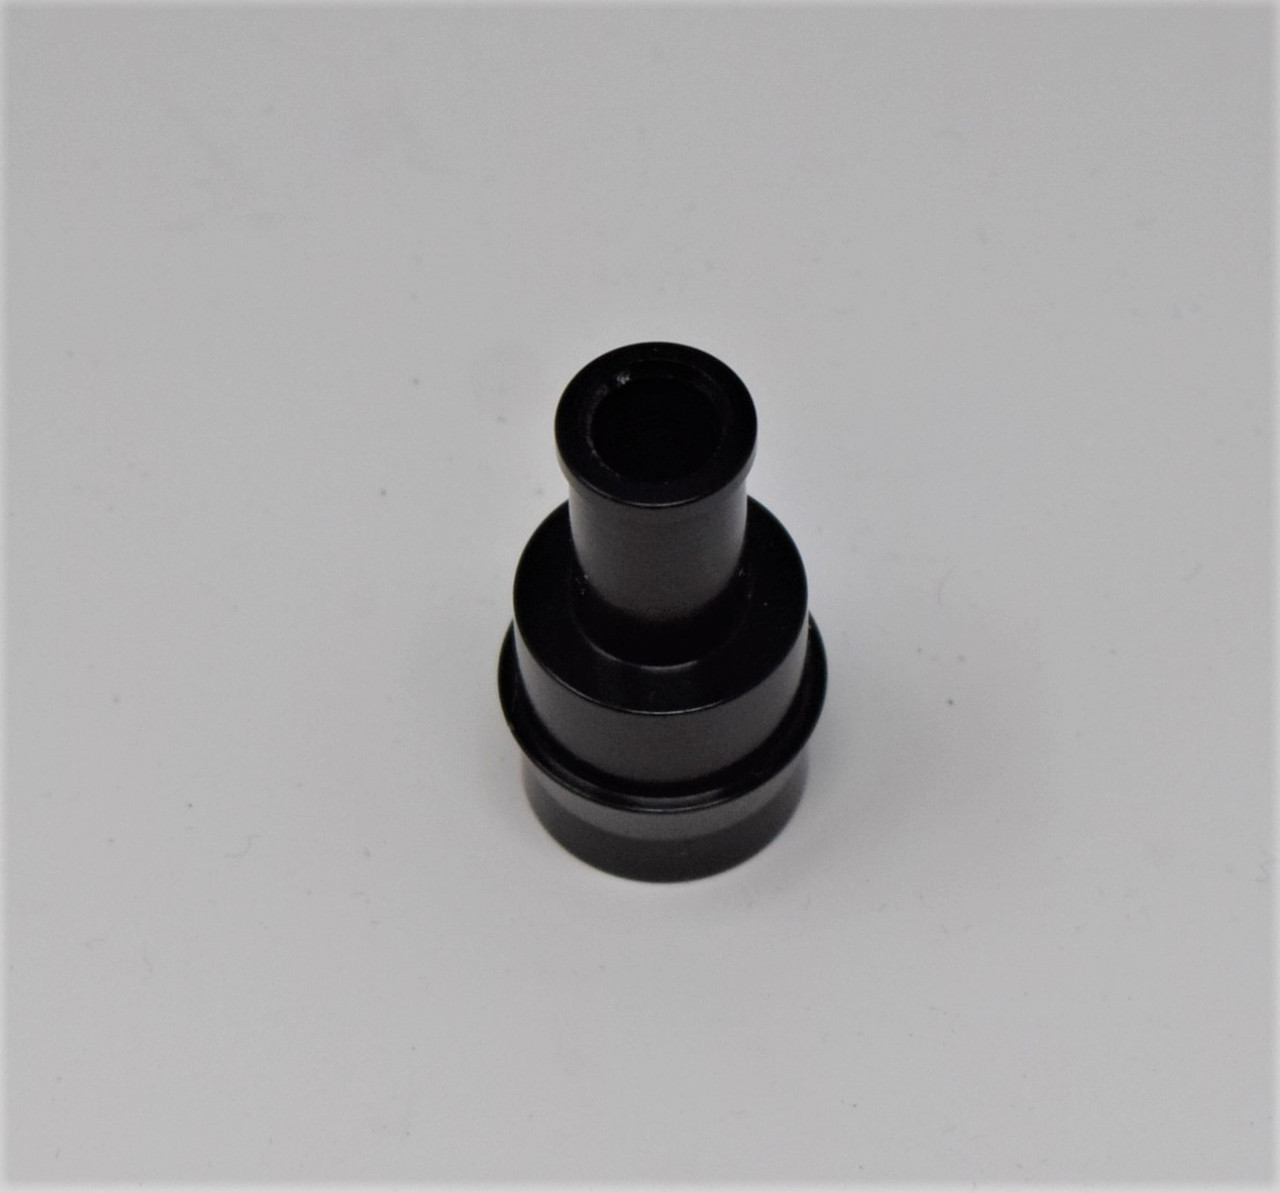 8mm ESS quick connector adapter